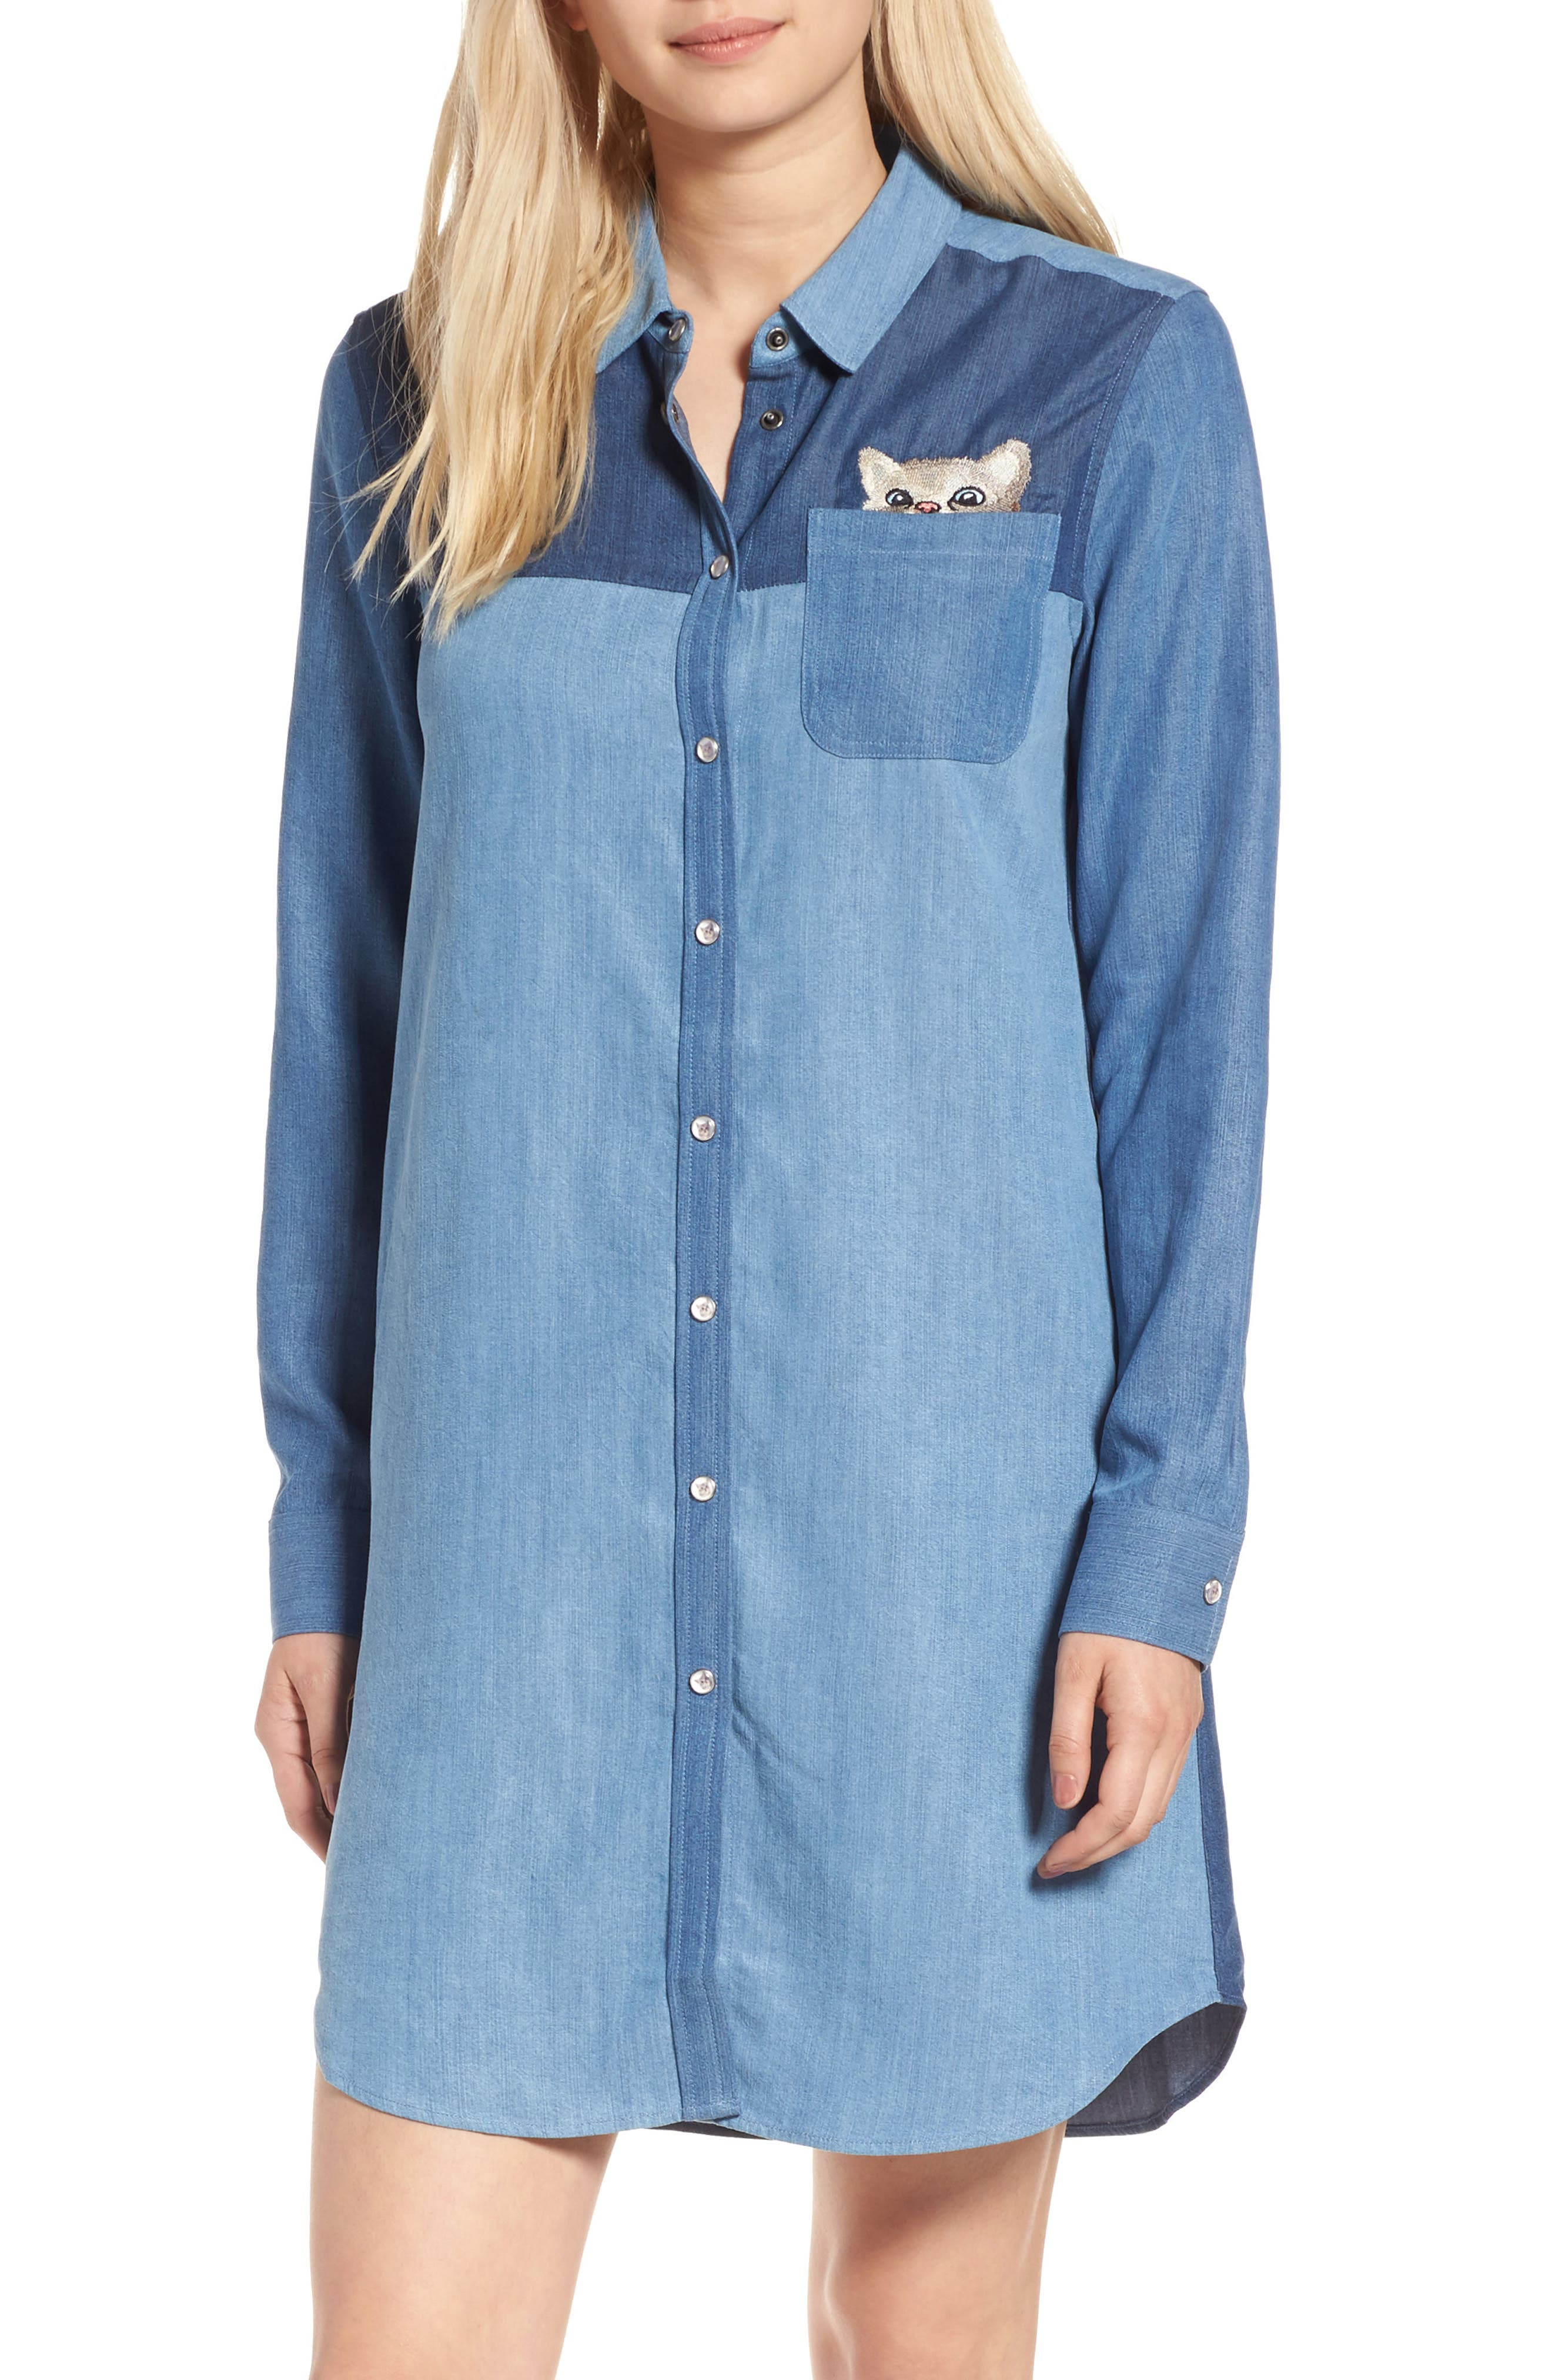 Kitty Chambray Shirtdress,                         Main,                         color, Denim